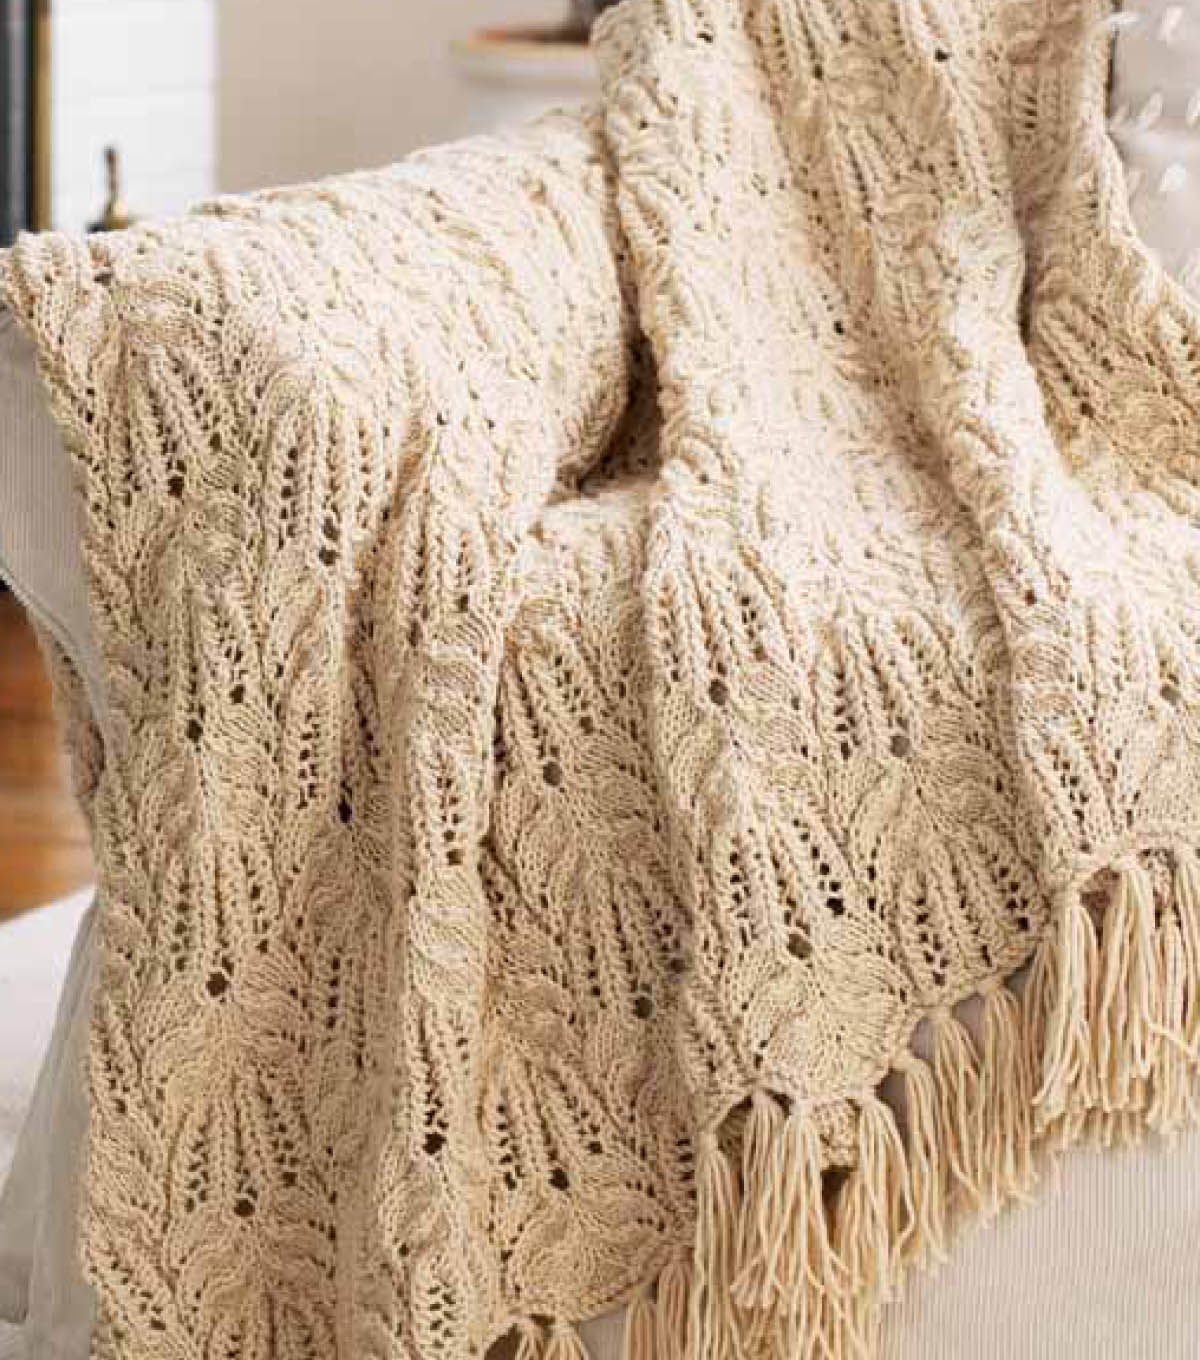 Knitting Afghan Patterns Free Free Knitting Pattern Lace And Cable Afghan